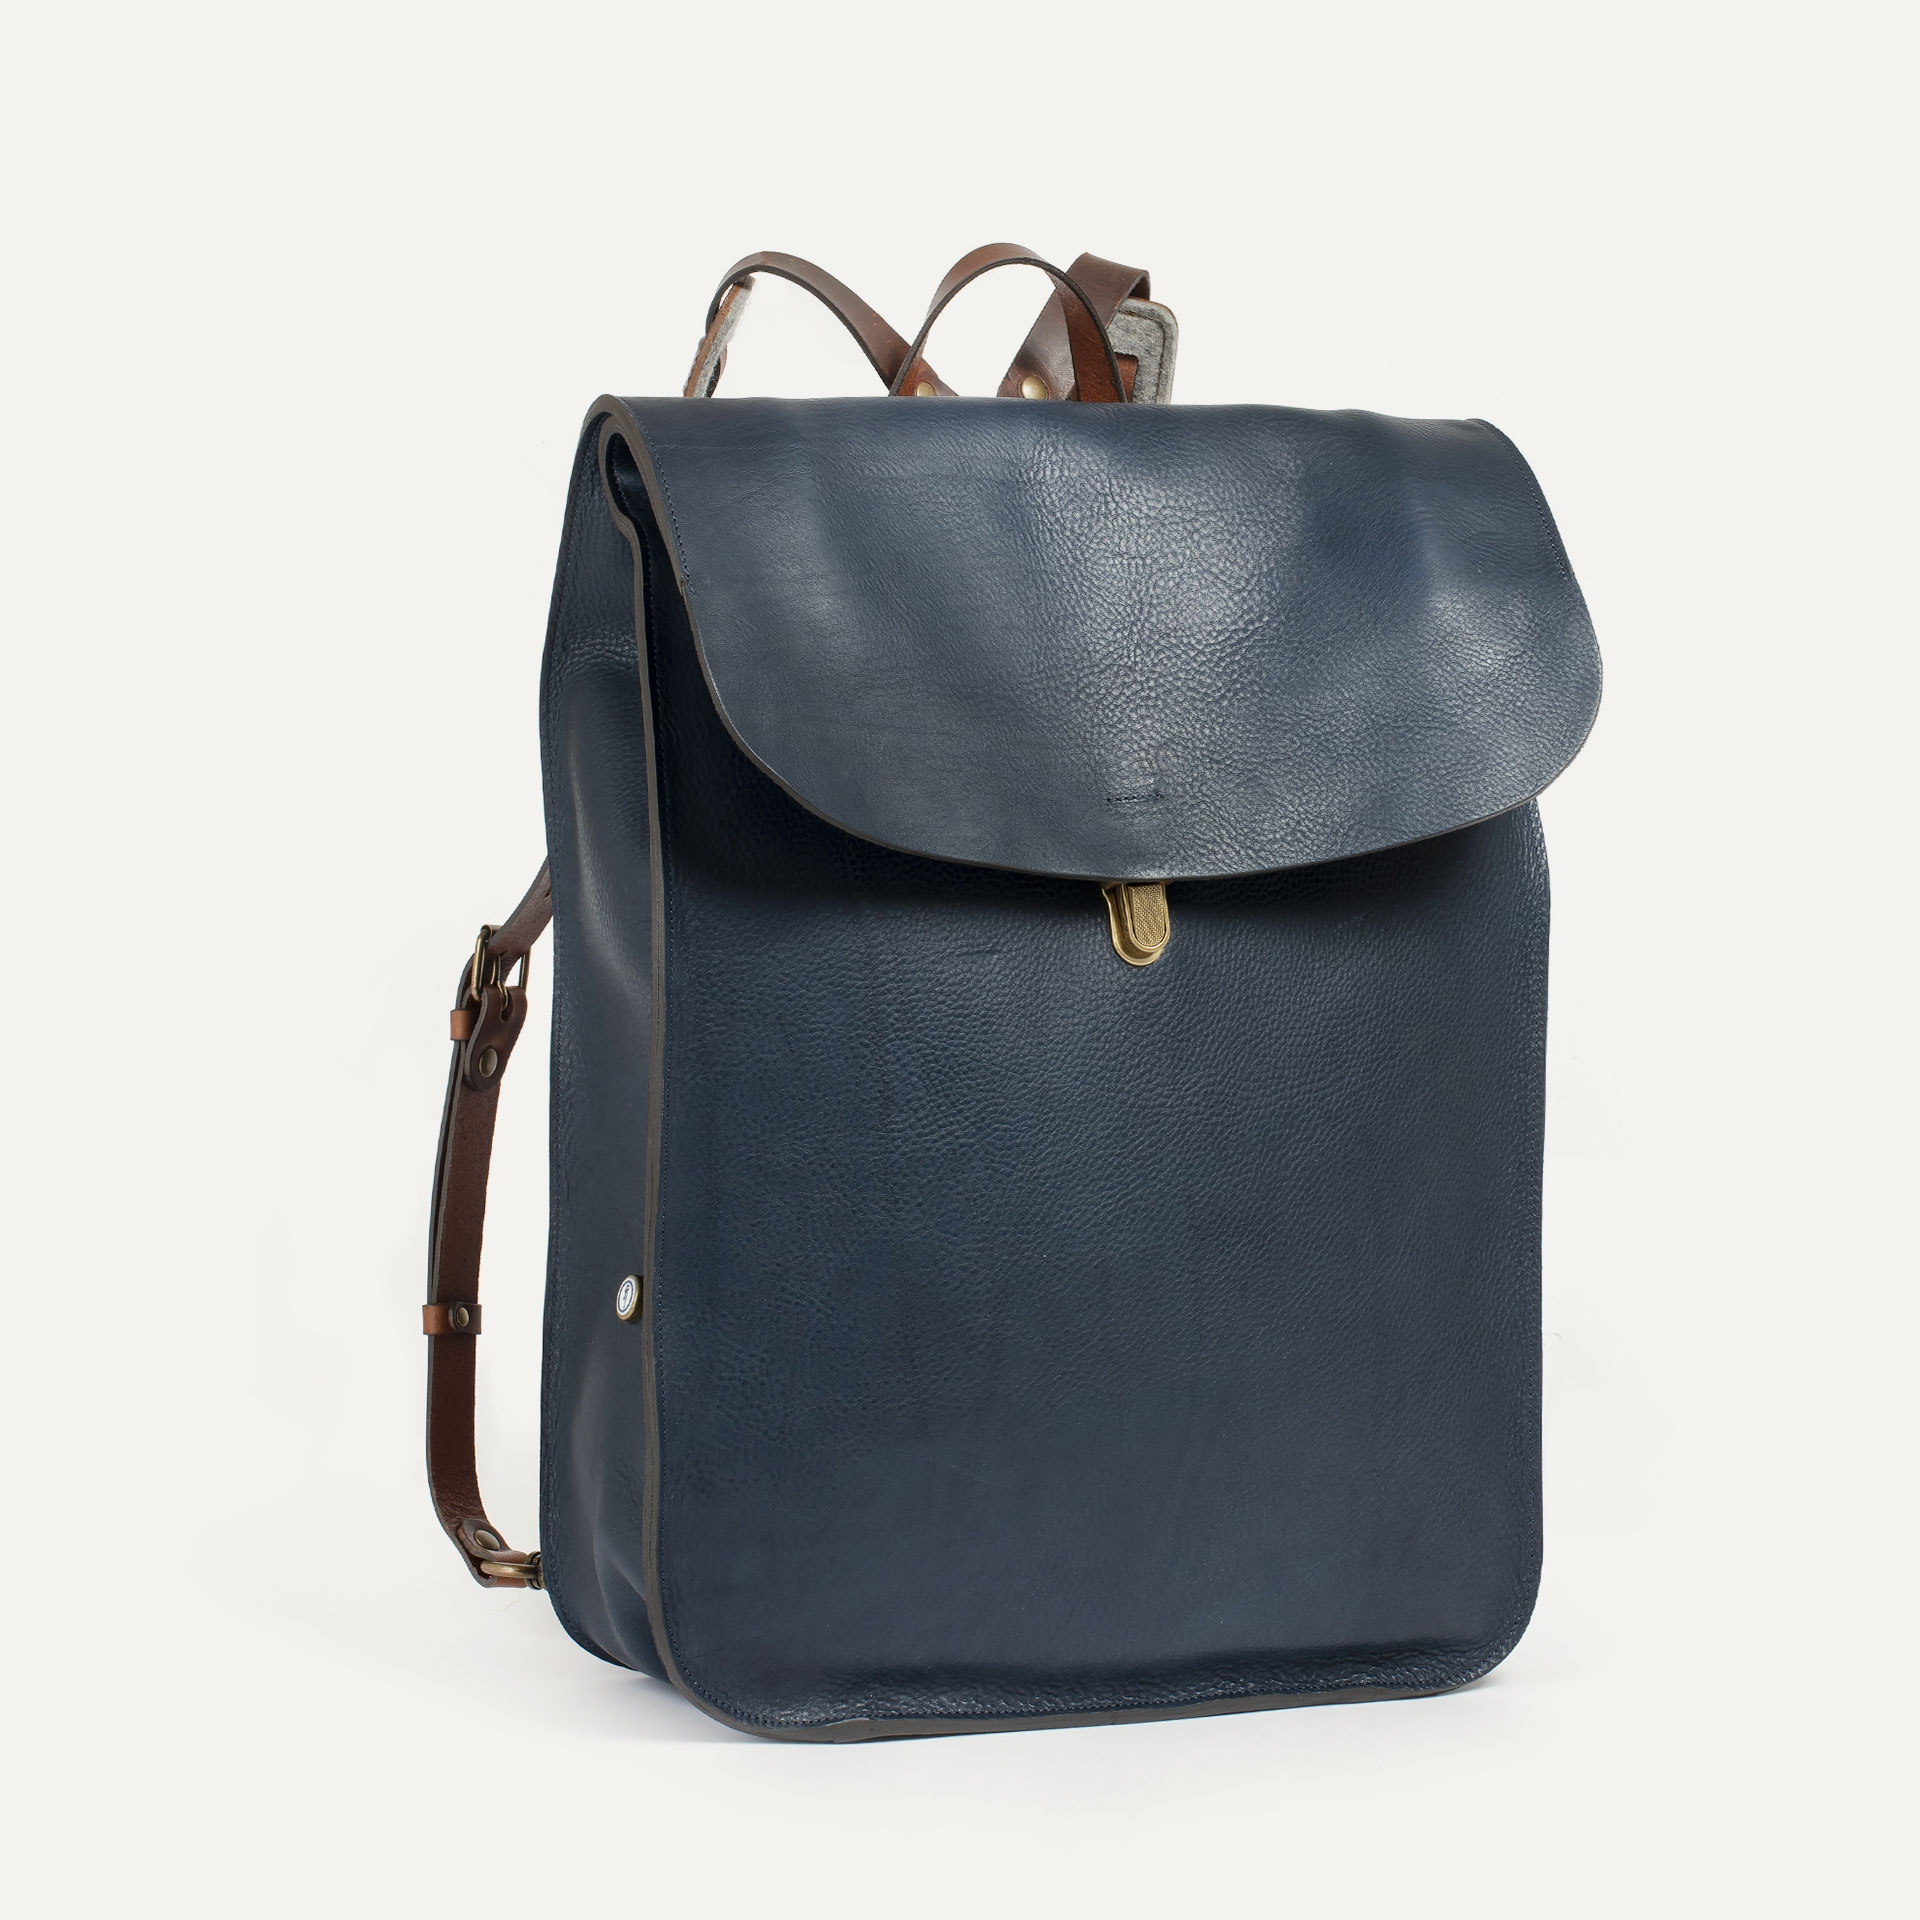 Arlo leather backpack - Navy Blue / E Pure (image n°2)